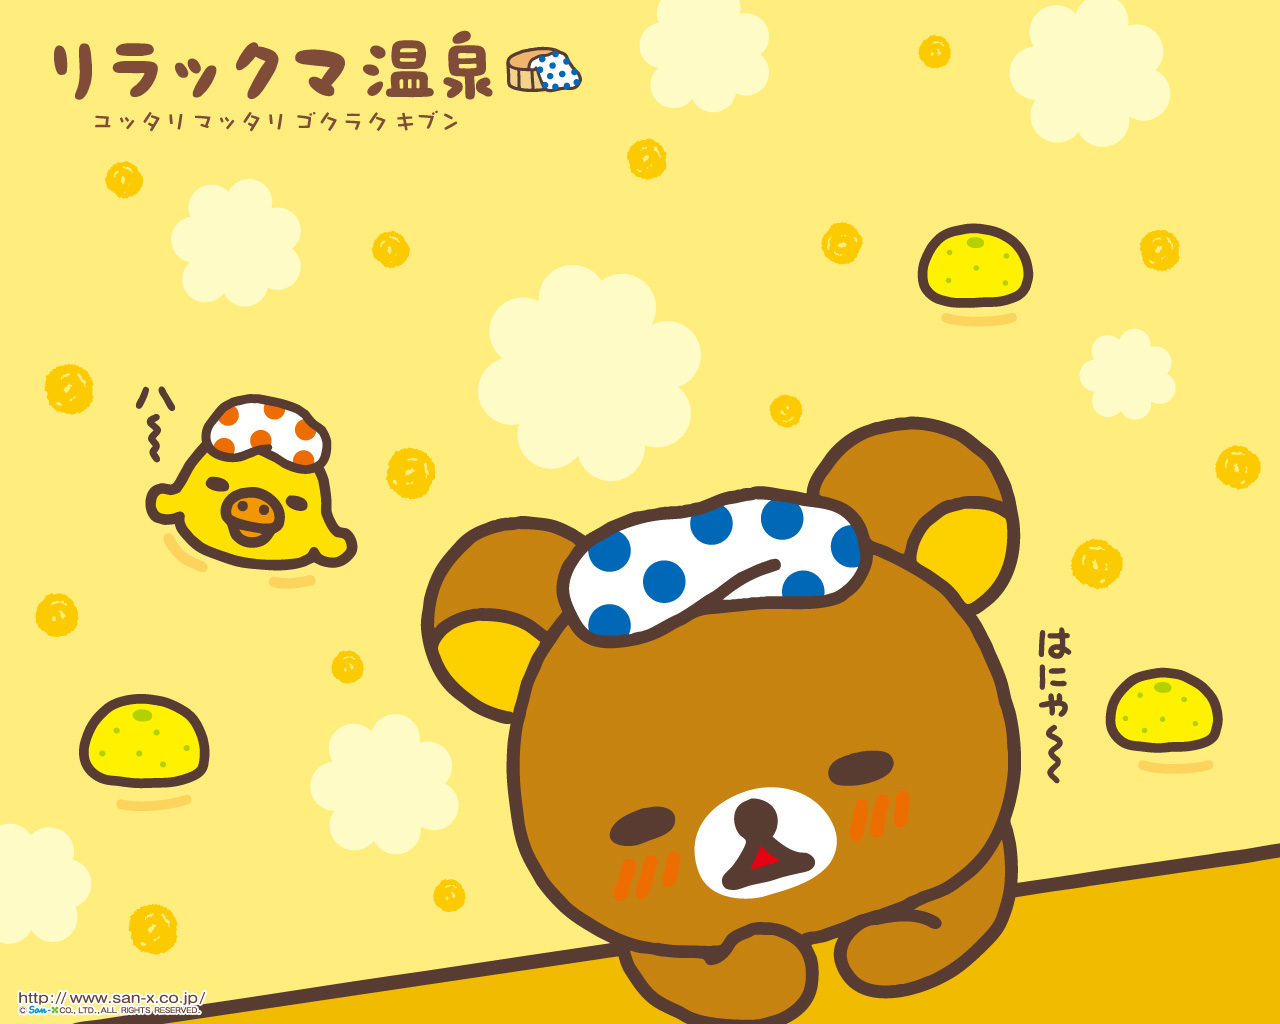 Iphone X Wallpaper Official Download Rilakkuma Wallpaper Free Rilakkuma Wallpaper From San X